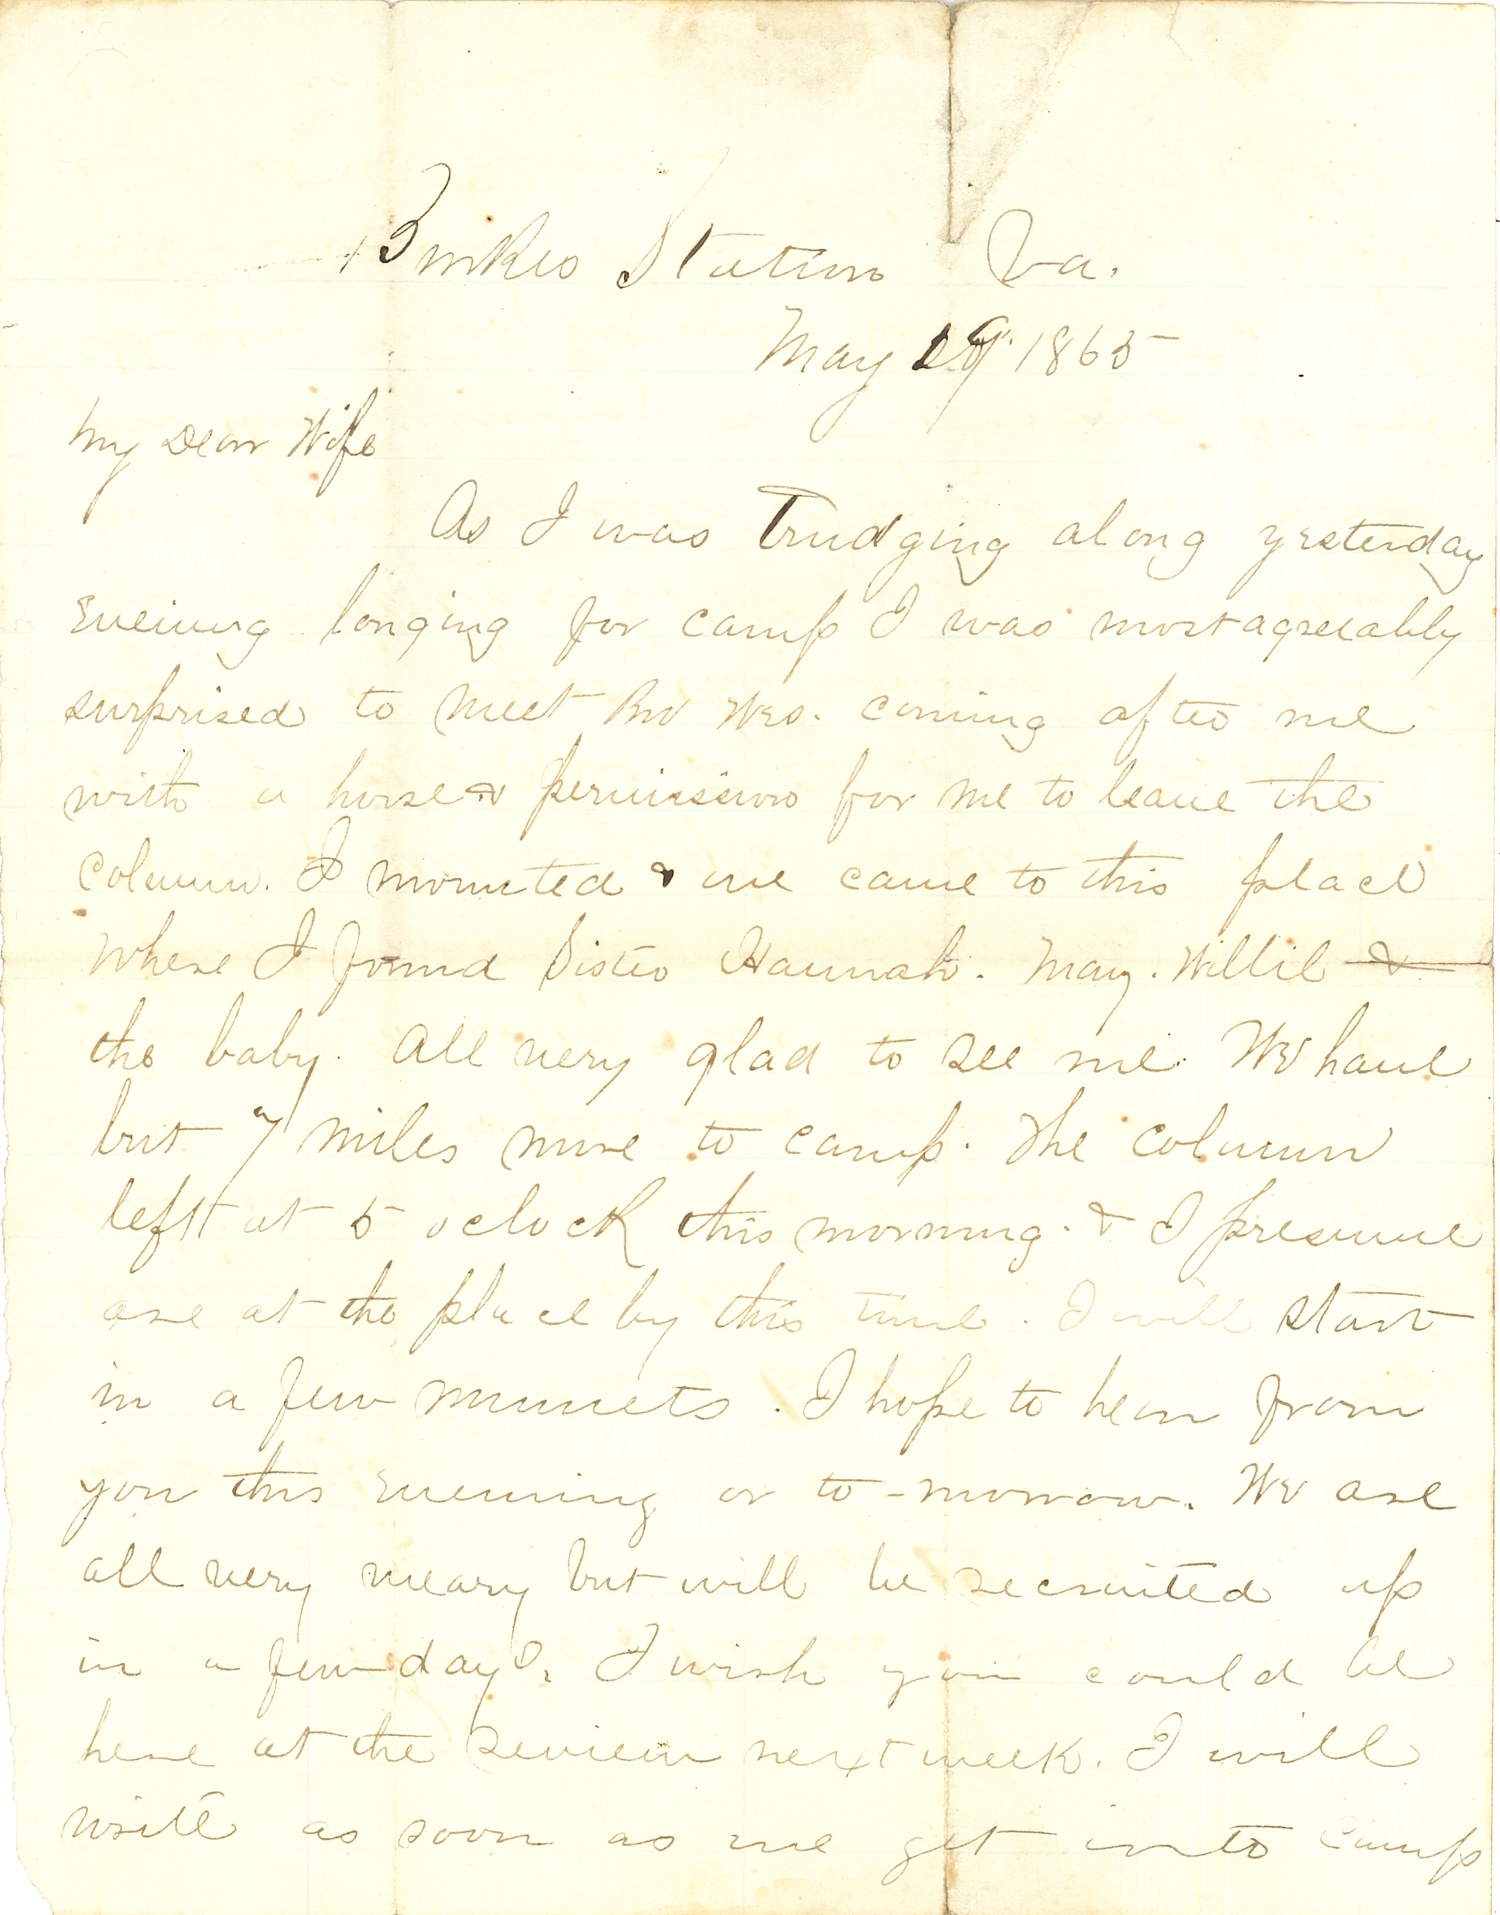 Joseph Culver Letter, May 19, 1865, Page 1